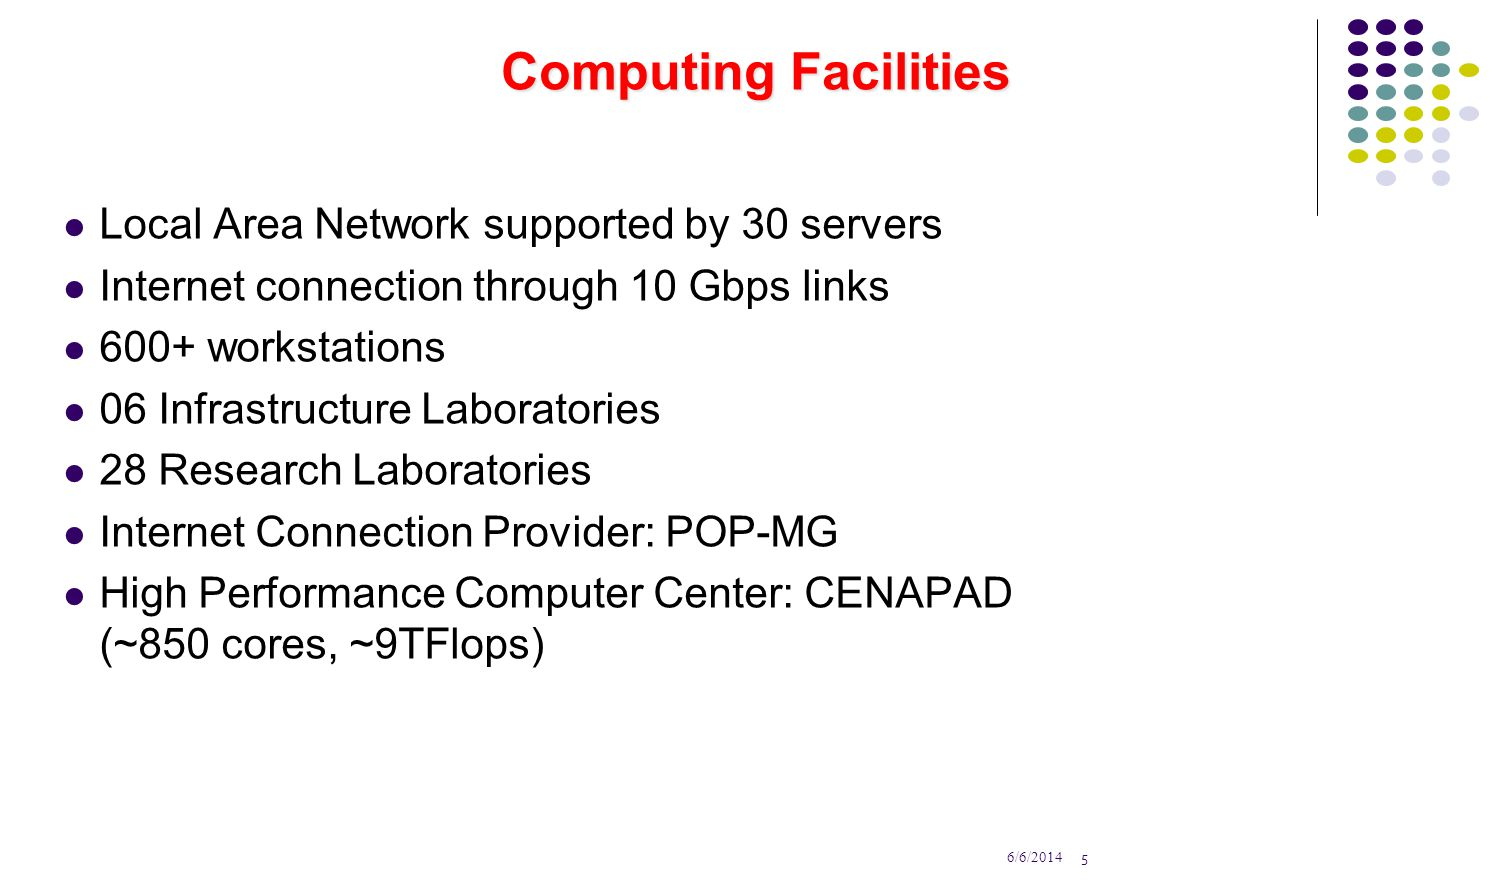 5 6/6/2014 Computing Facilities Local Area Network supported by 30 servers Internet connection through 10 Gbps links 600+ workstations 06 Infrastructure Laboratories 28 Research Laboratories Internet Connection Provider: POP-MG High Performance Computer Center: CENAPAD (~850 cores, ~9TFlops)